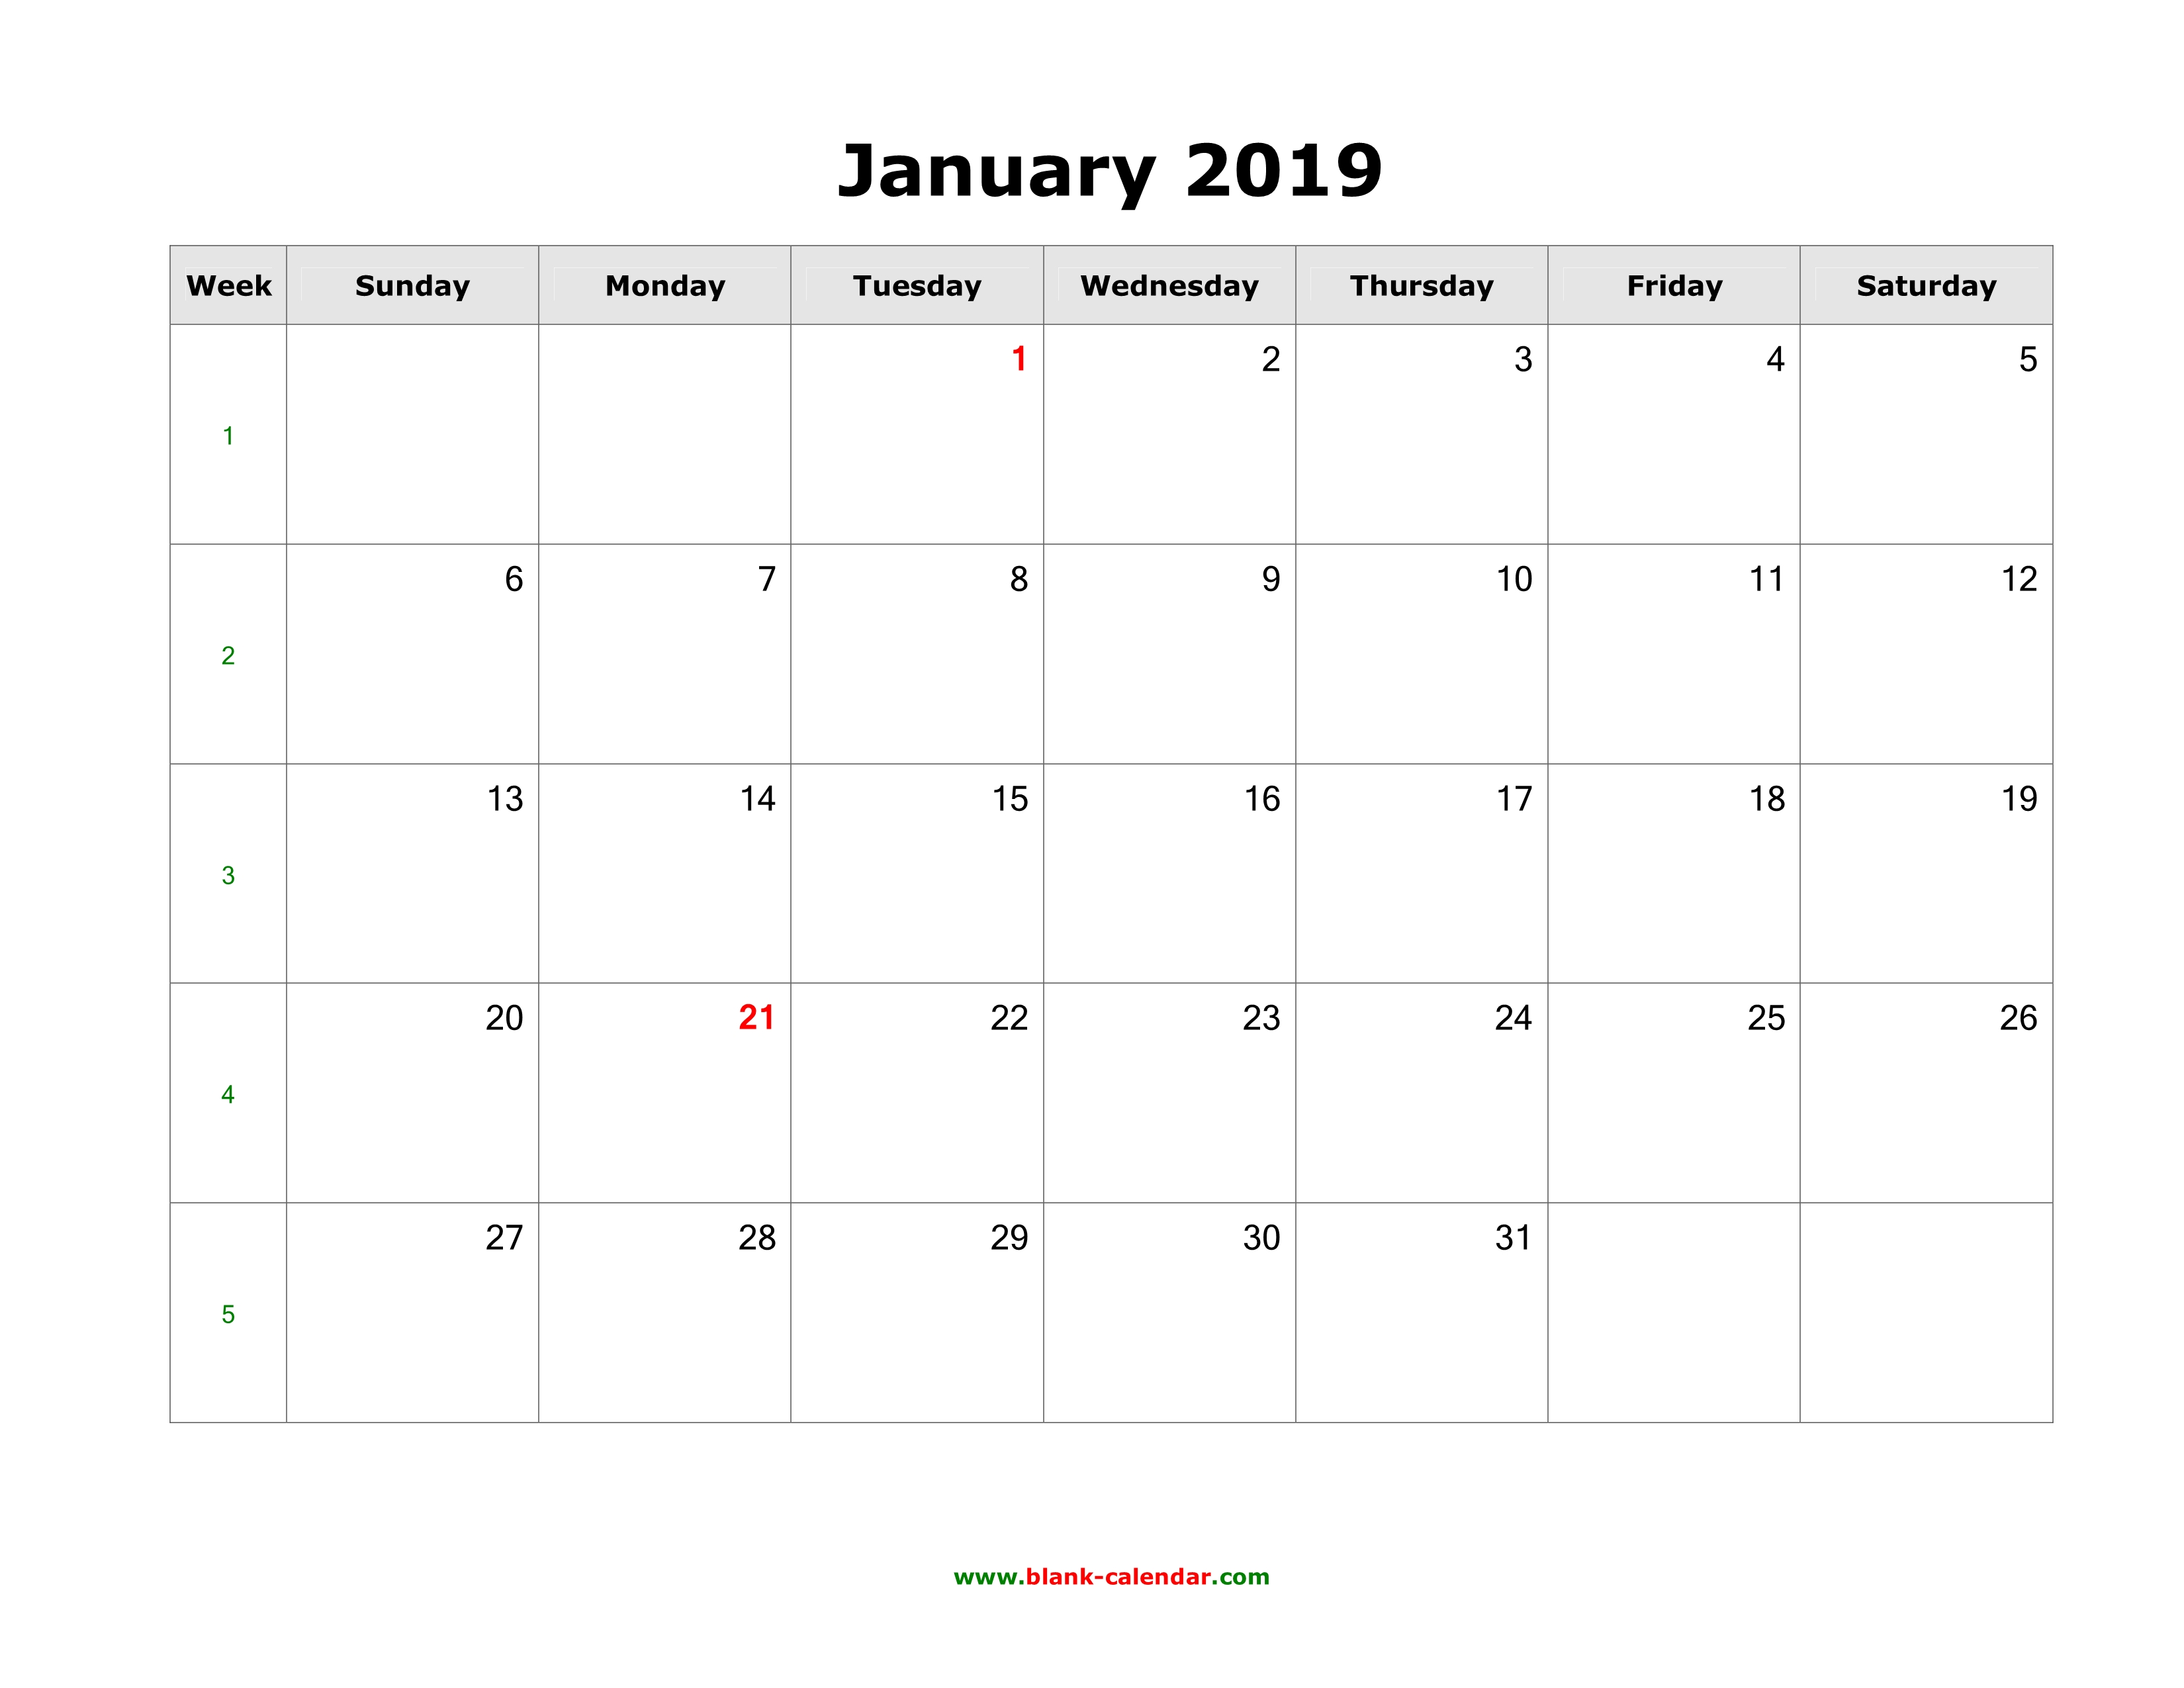 Calendar Pages 2019 Download Blank Calendar 2019 (12 pages, one month per page